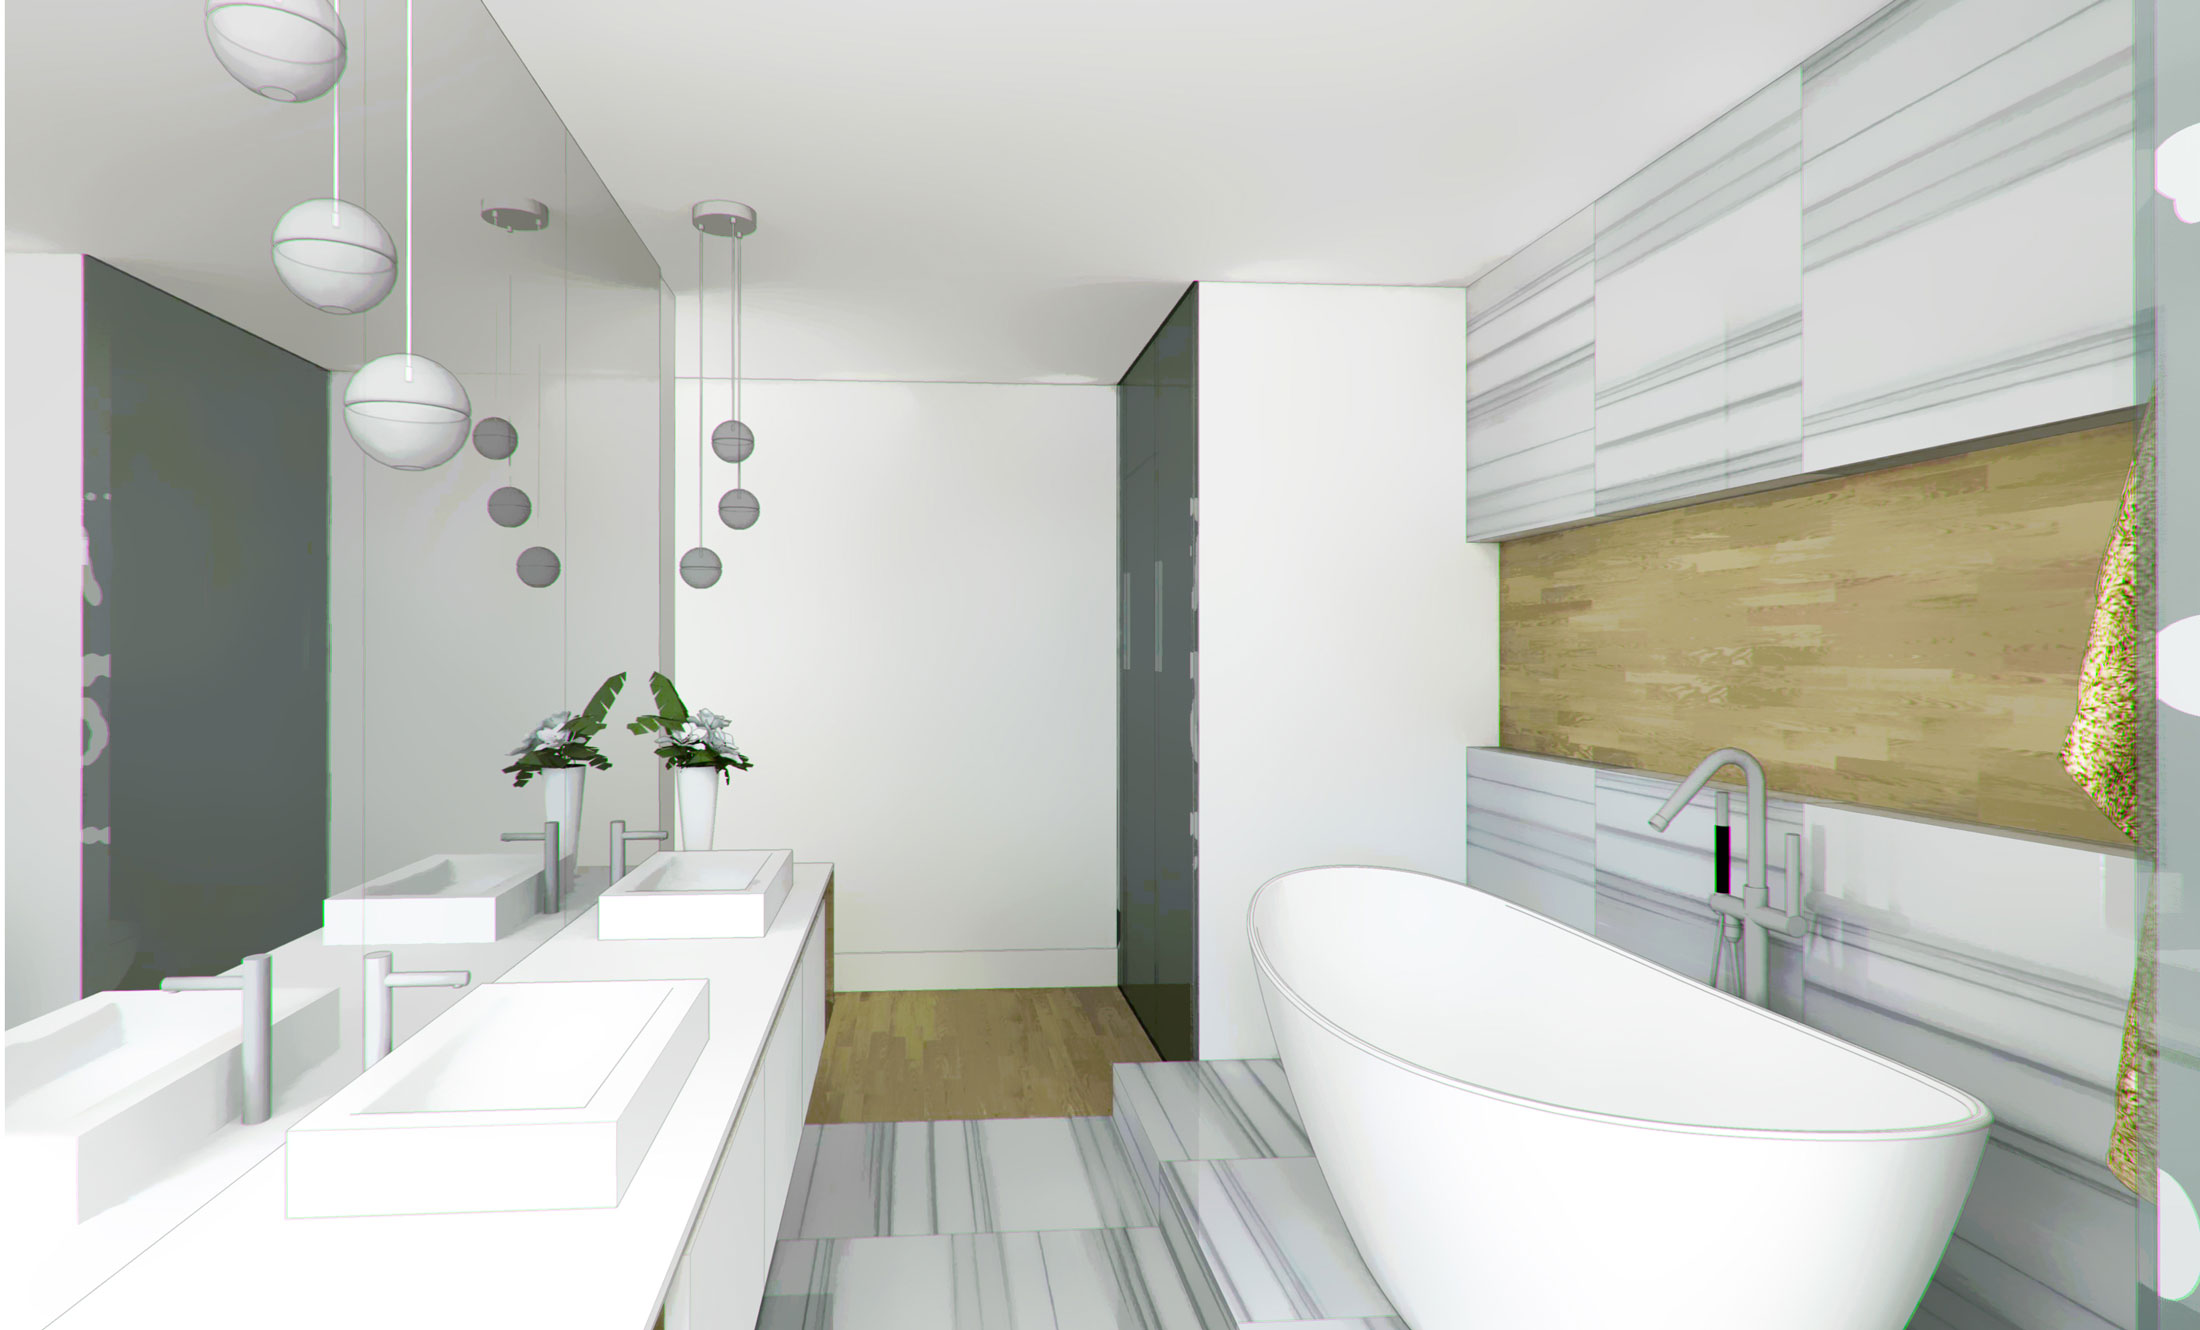 Unit 7 Architecture | Projects - South Drive Residence M - INTERIOR BATHROOM RENDERING